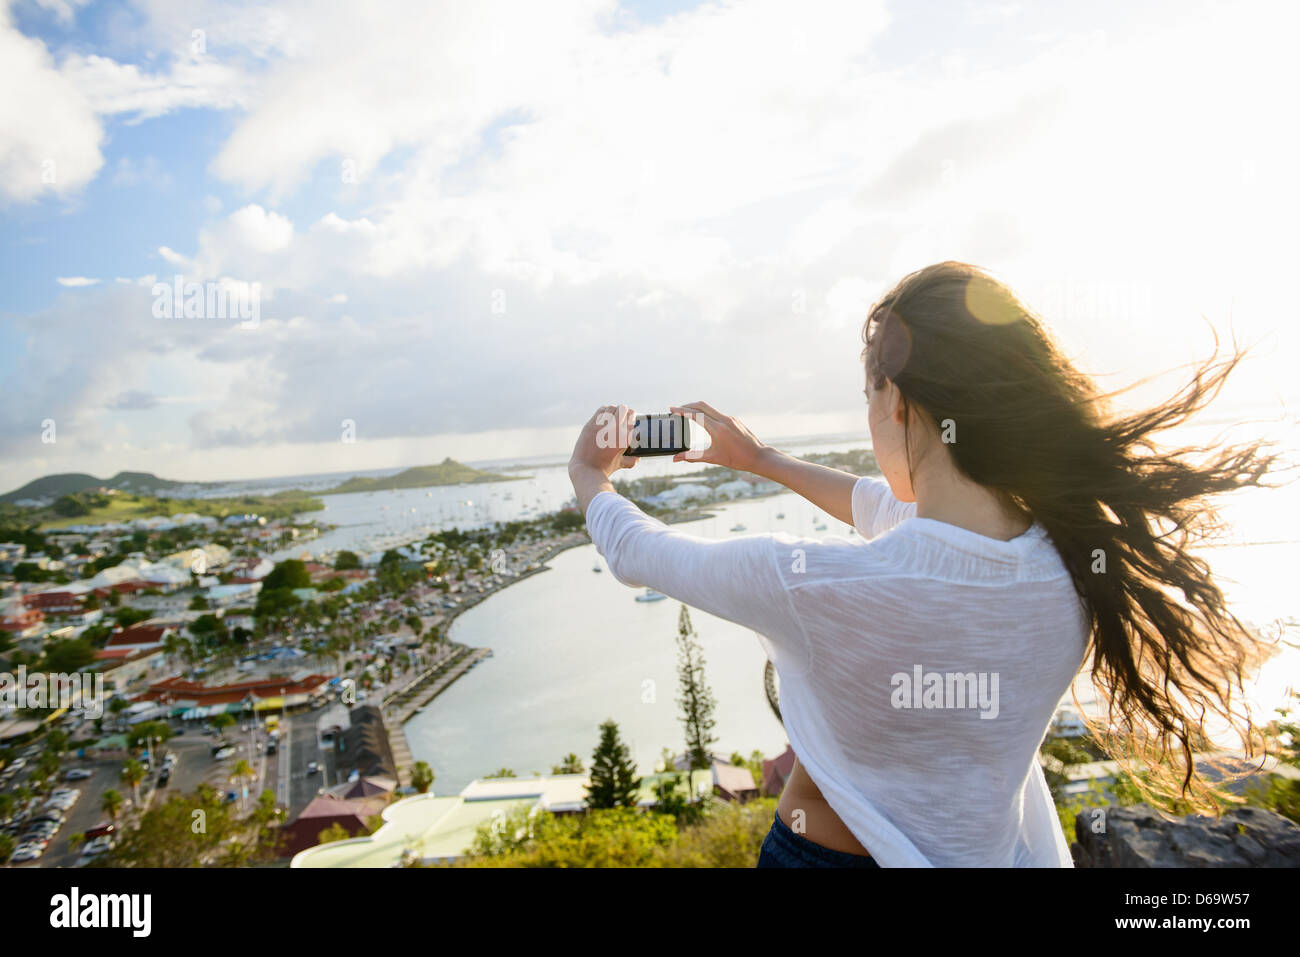 Woman taking picture of coast landscape Stock Photo